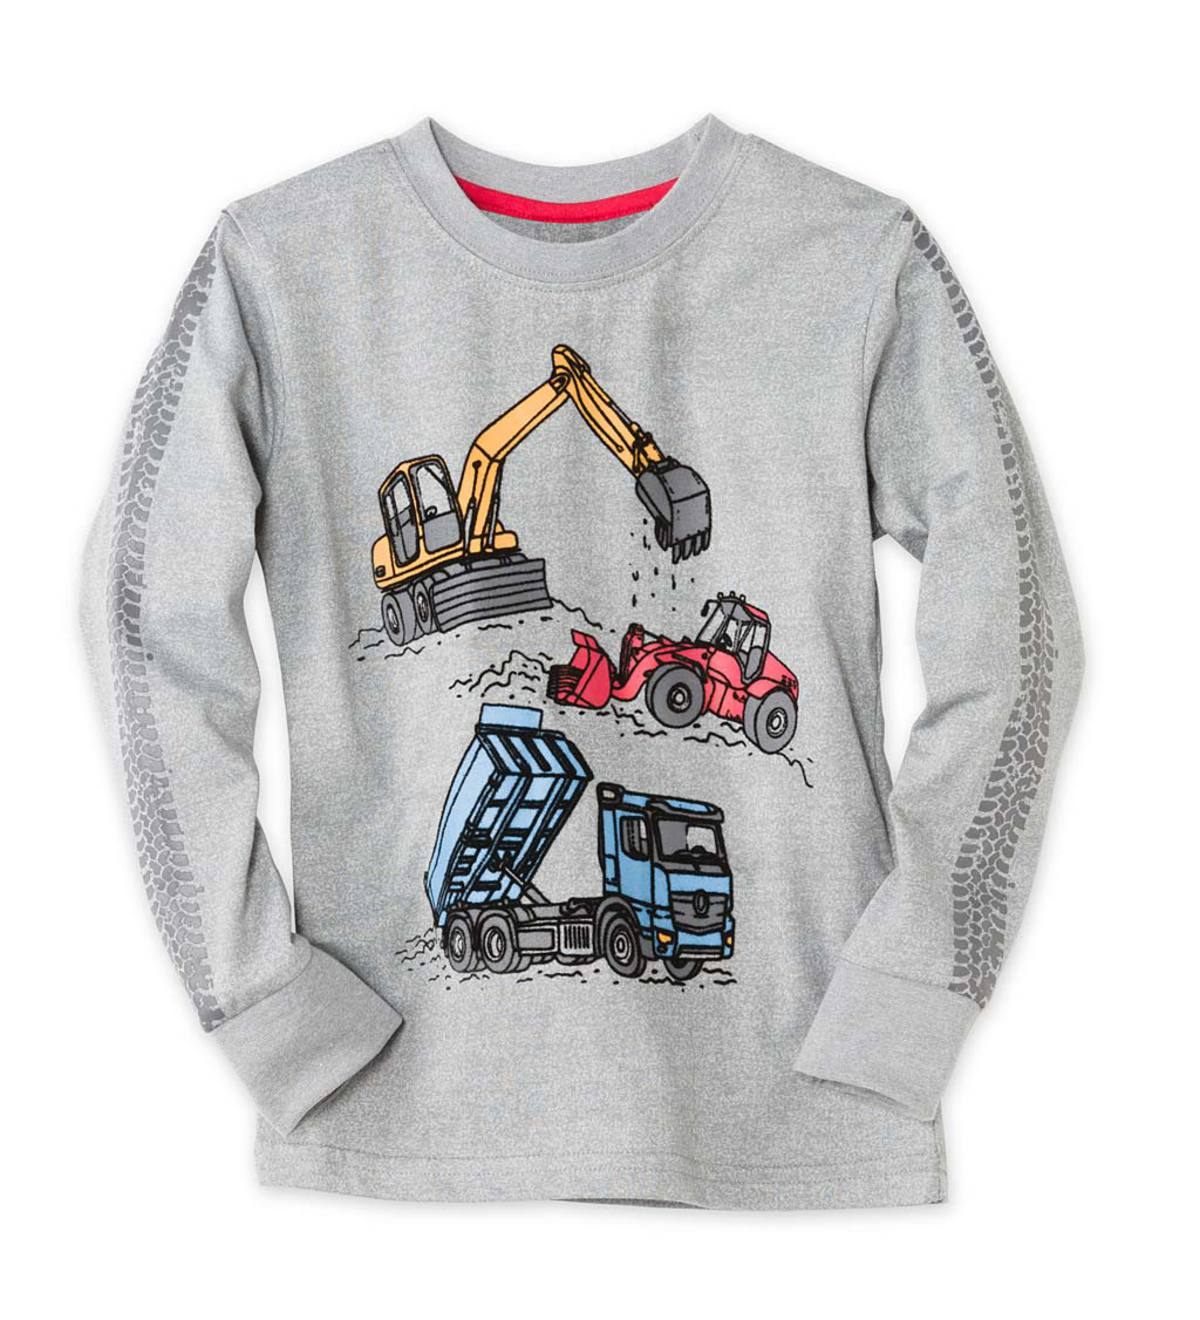 Long-Sleeve Construction Vehicles Tee - GY - 2T